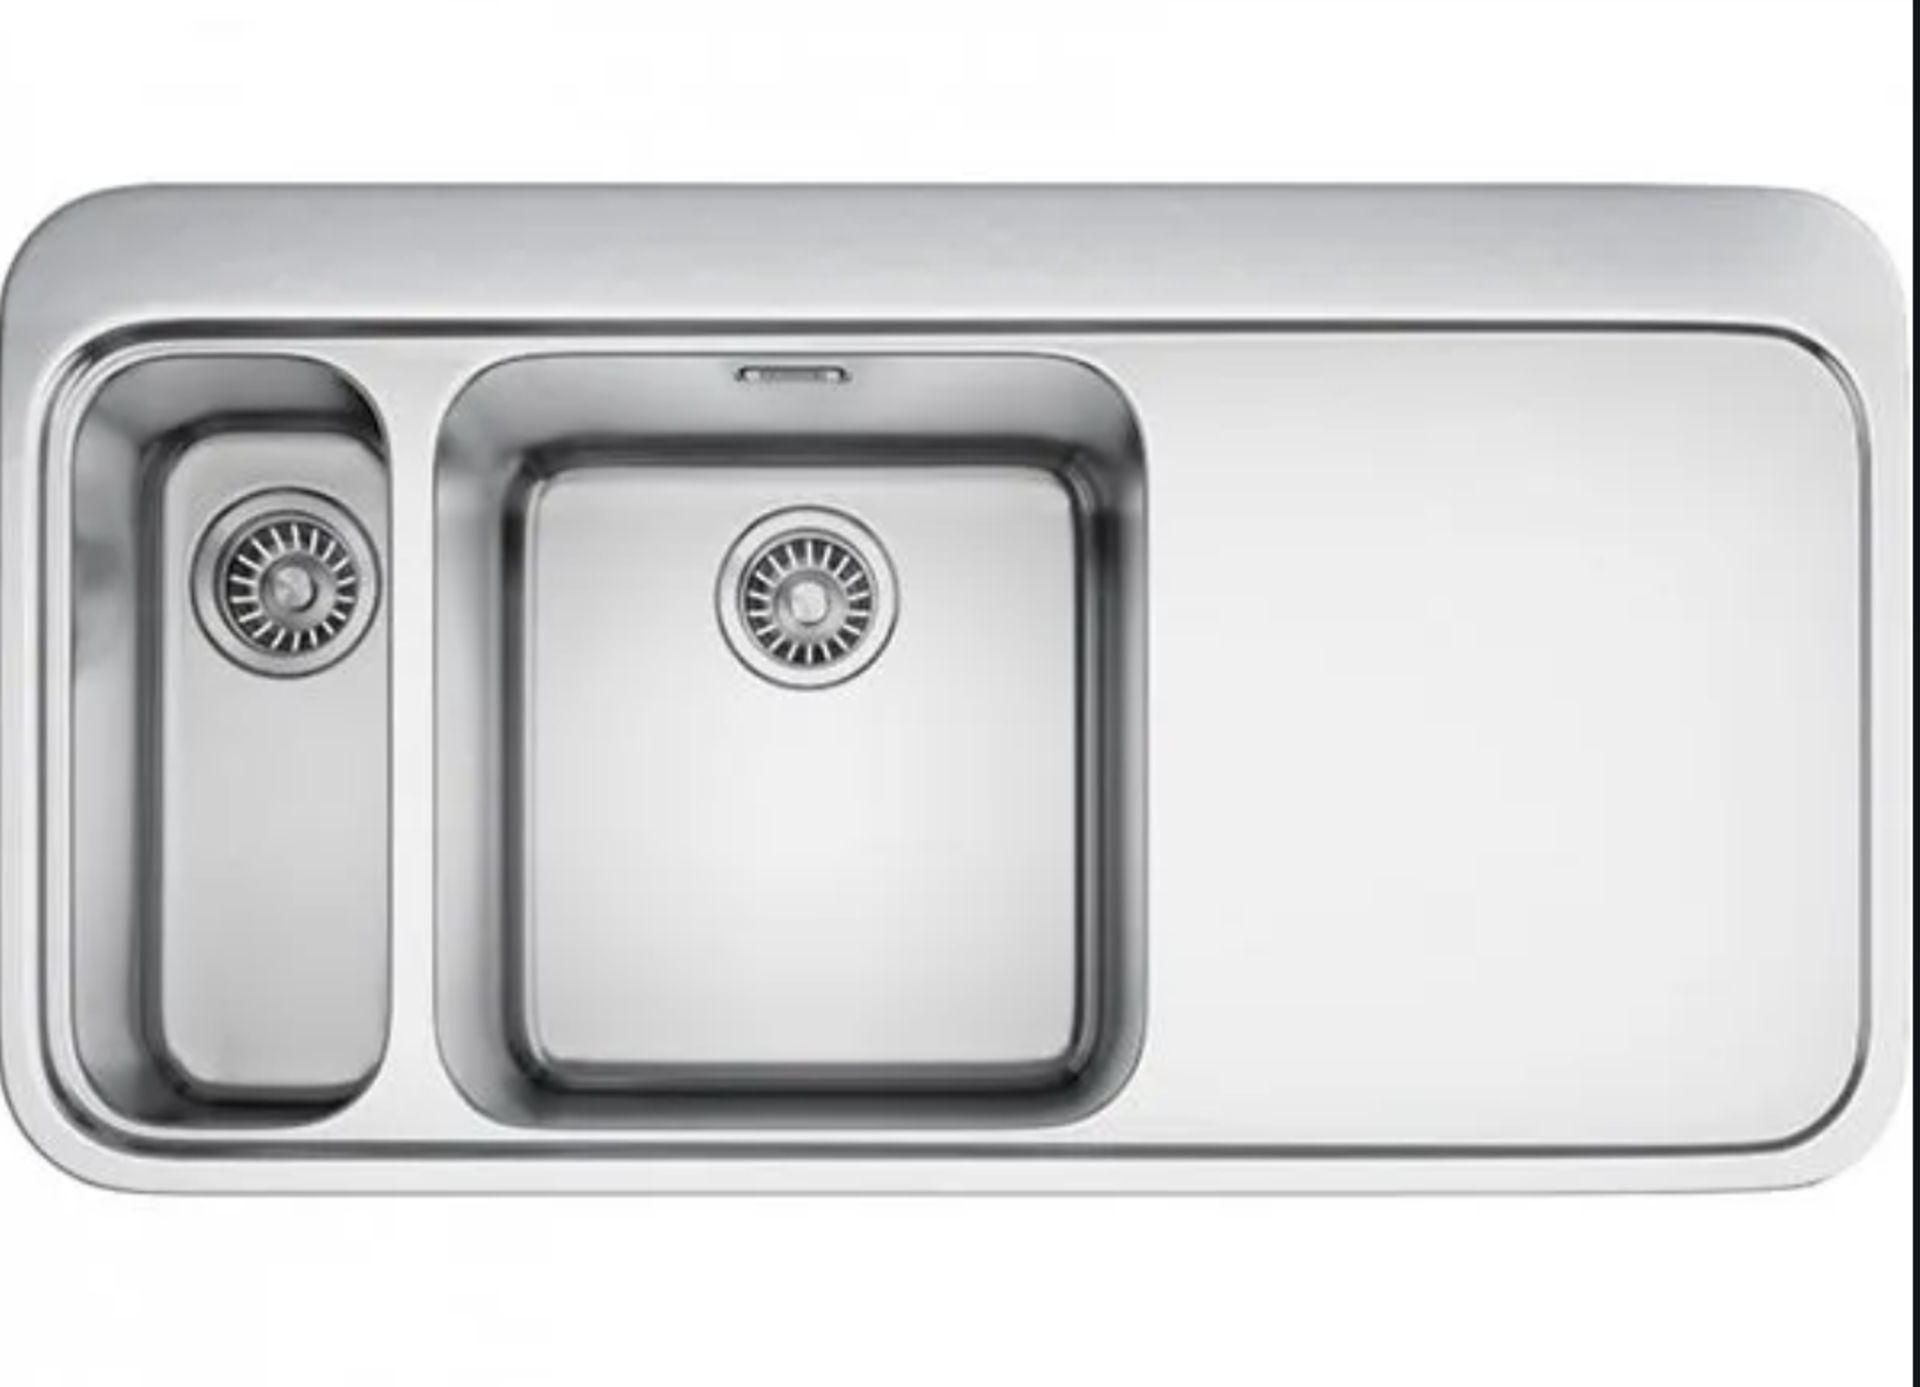 Boxed Brand New Factory Sealed Franke Sink- Model- SNX 261 965x510mm, RRP-£450.00